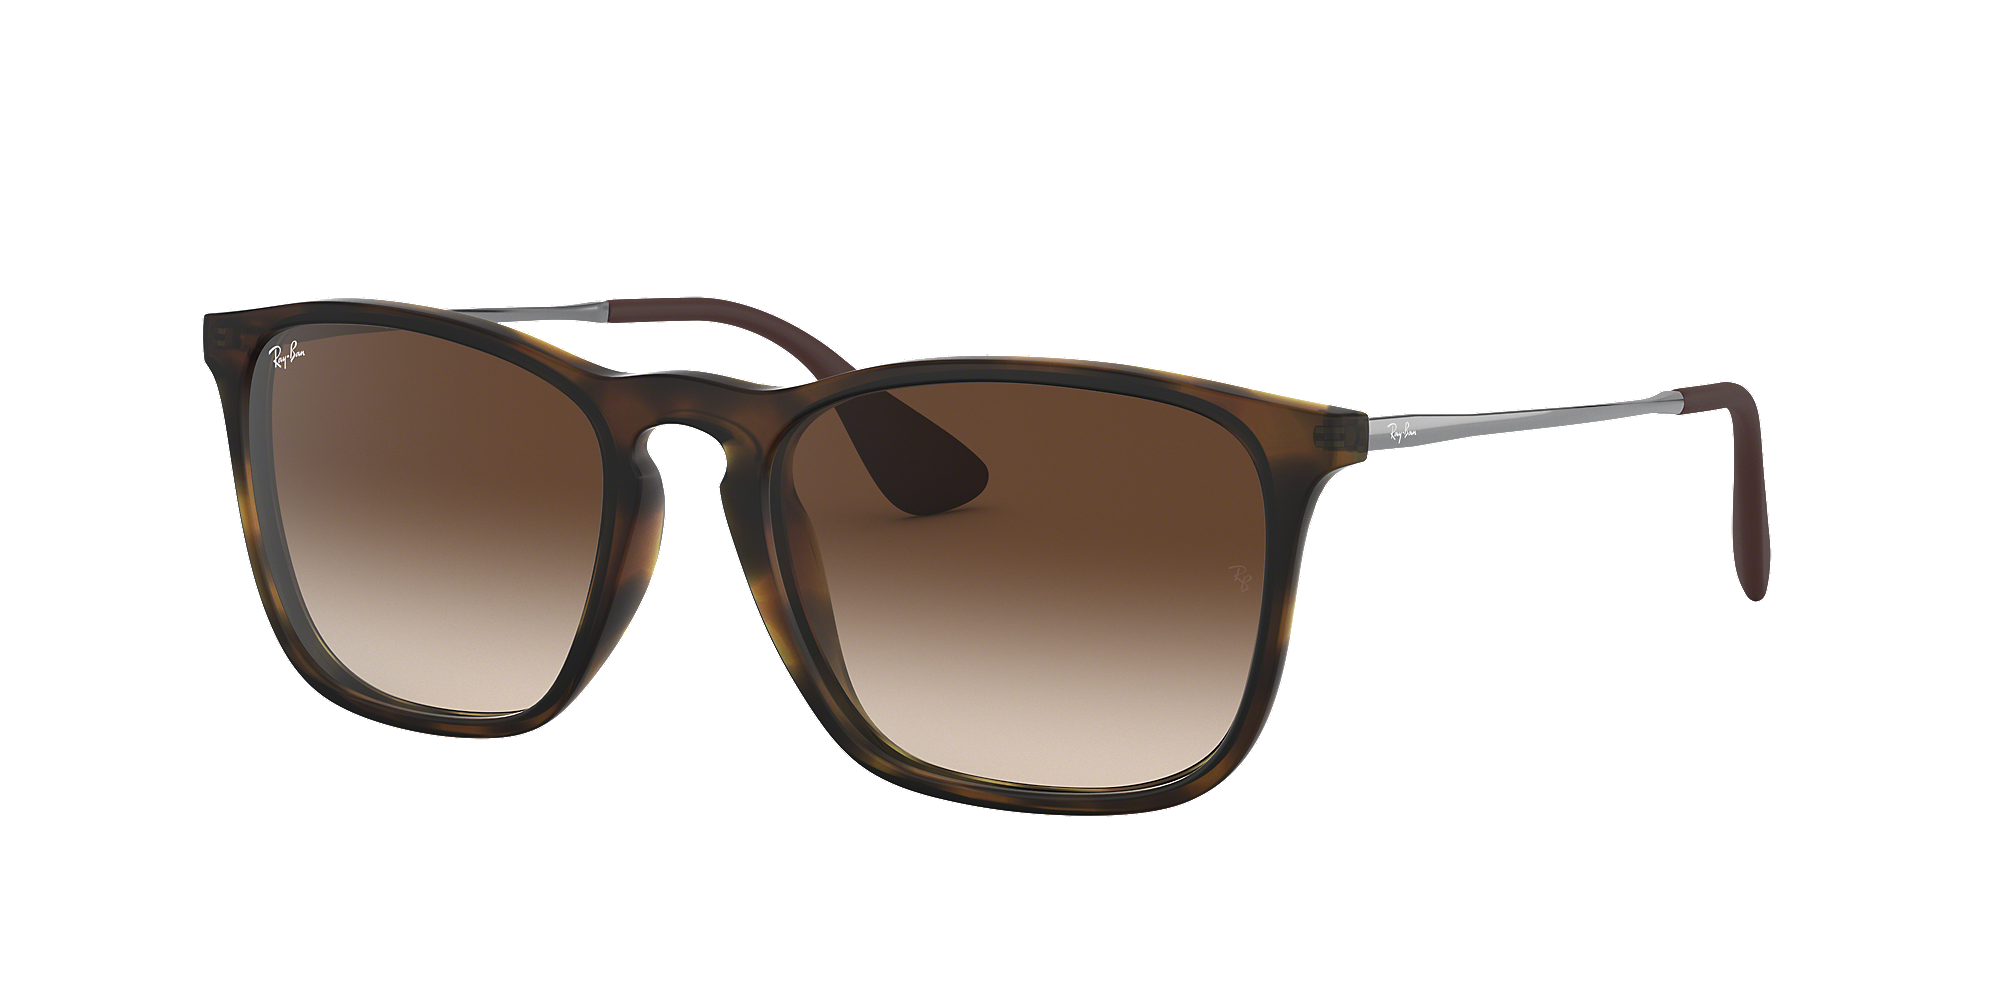 ray ban sunglasses sale sydney  ray ban rb4187 chris sunglasses